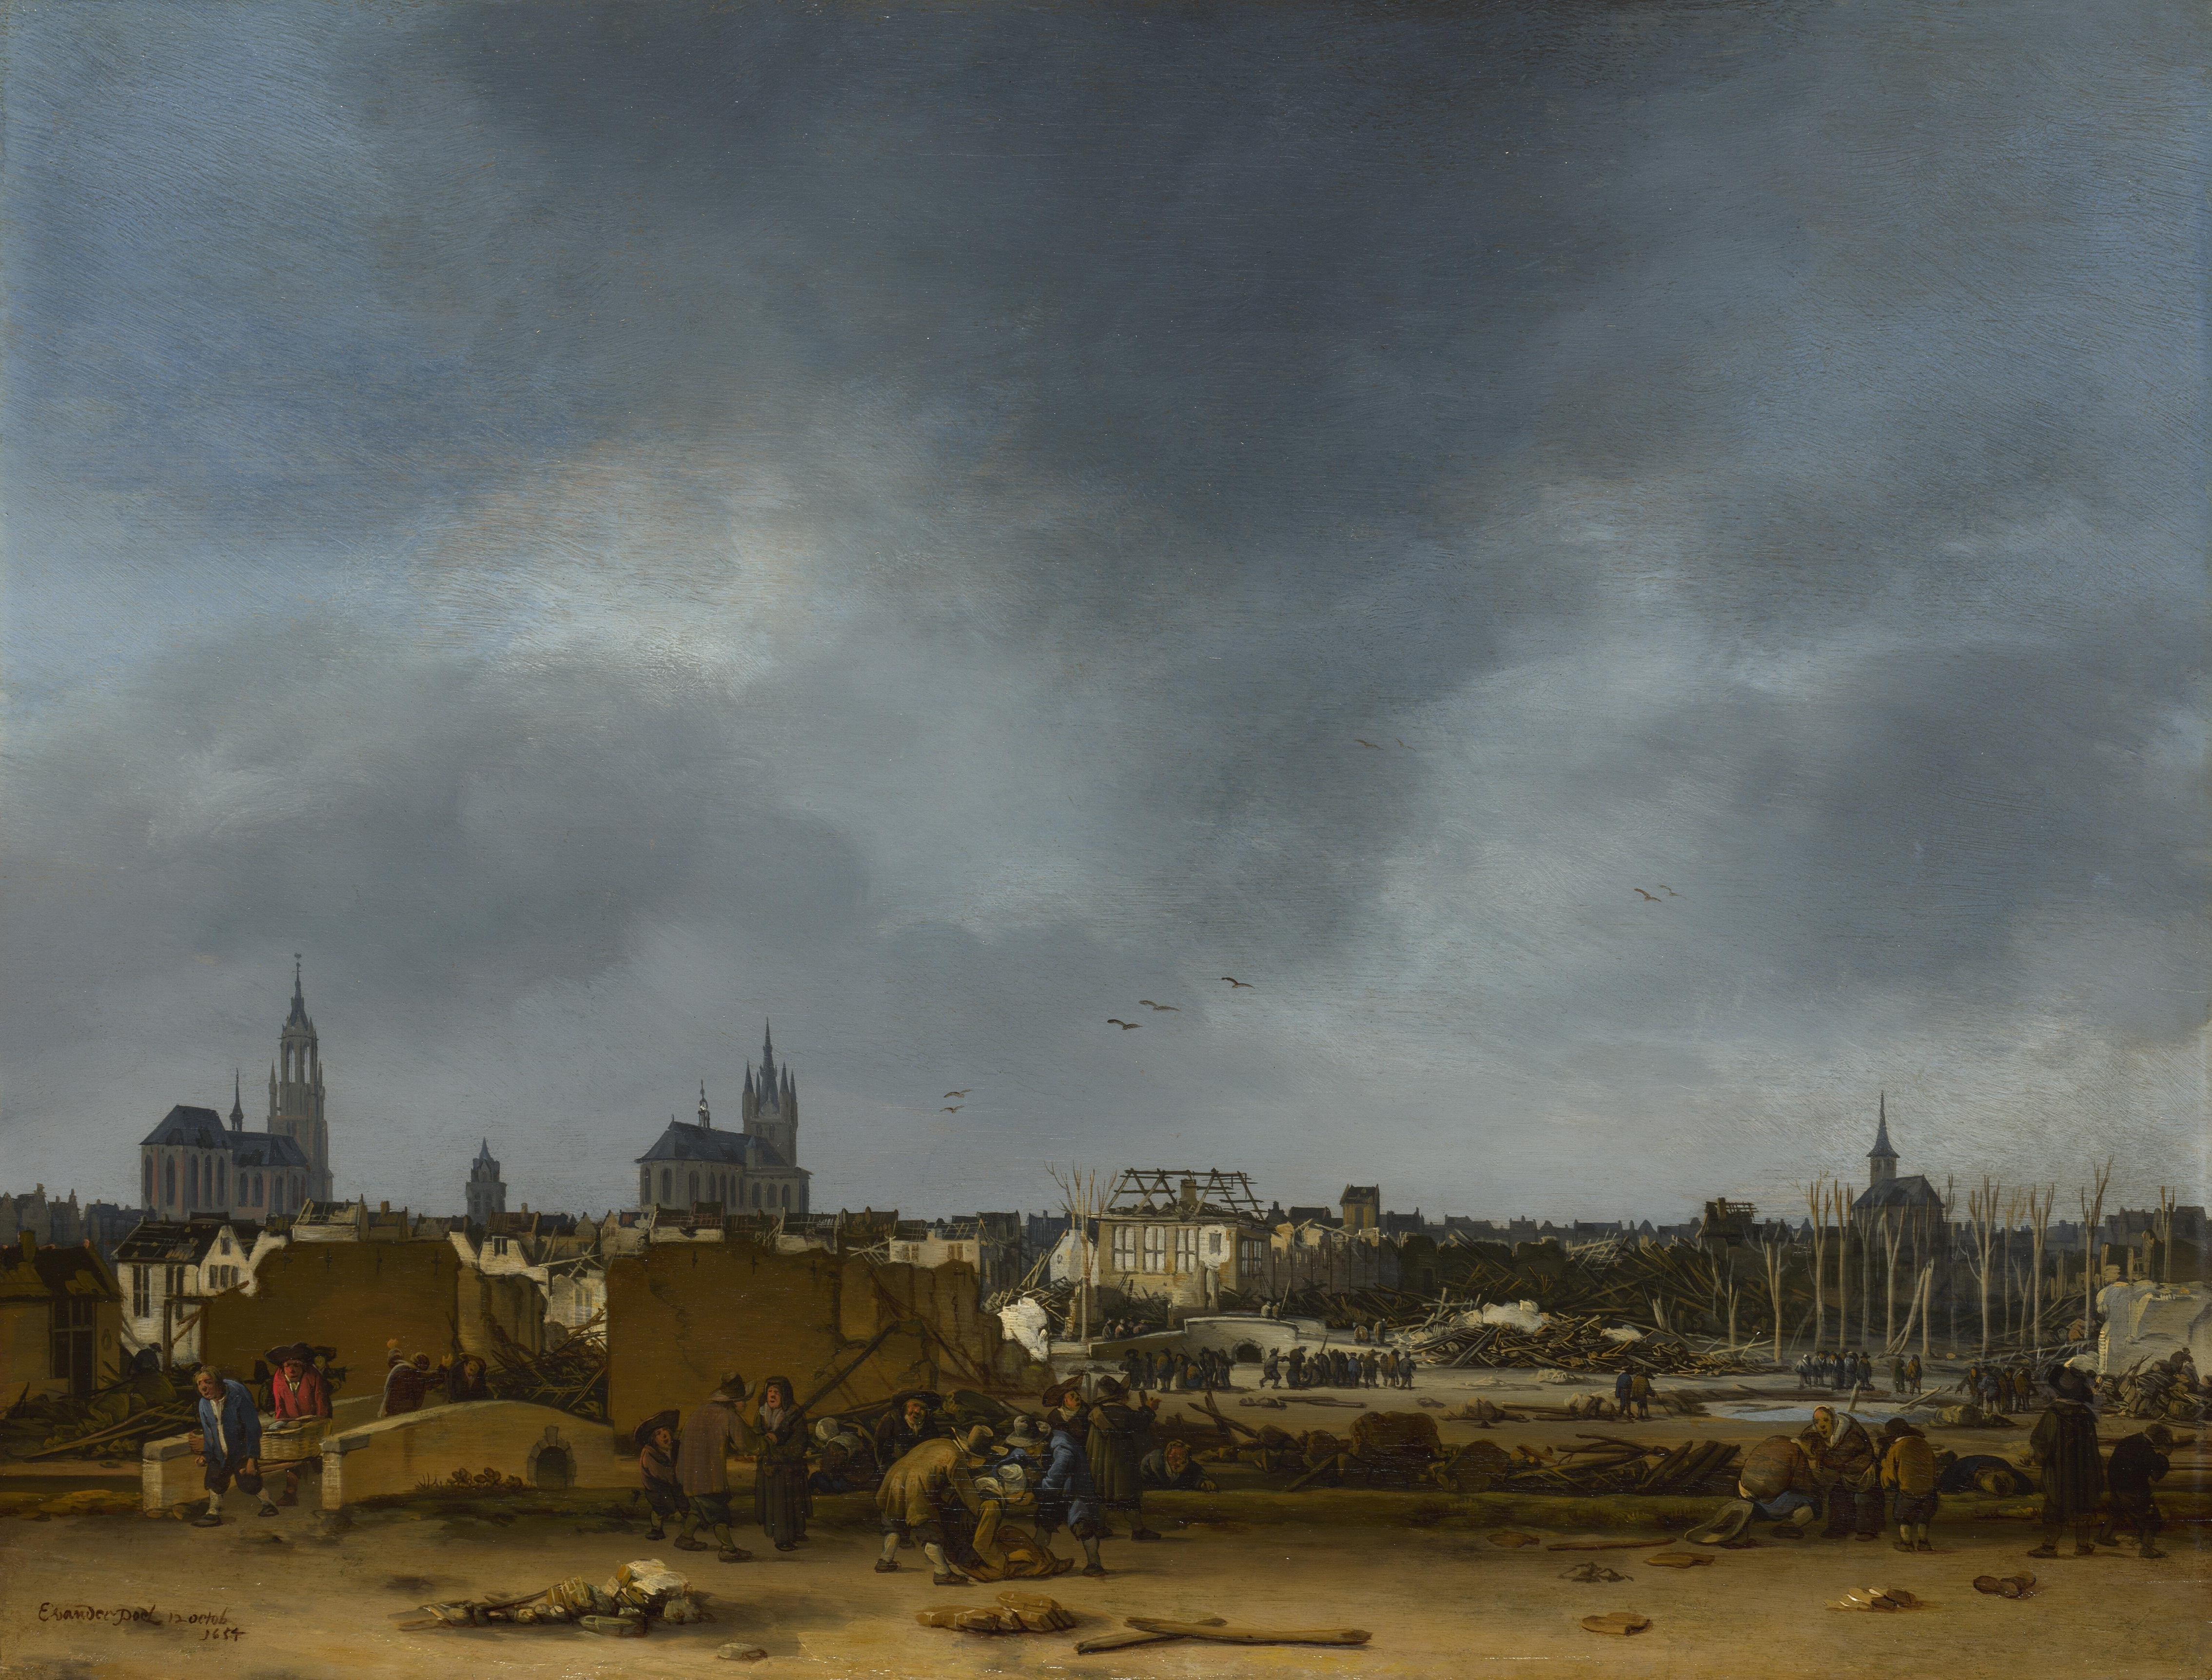 View of Delft after the Delft Explosion of 12 October 1654, in which most of the city was damaged